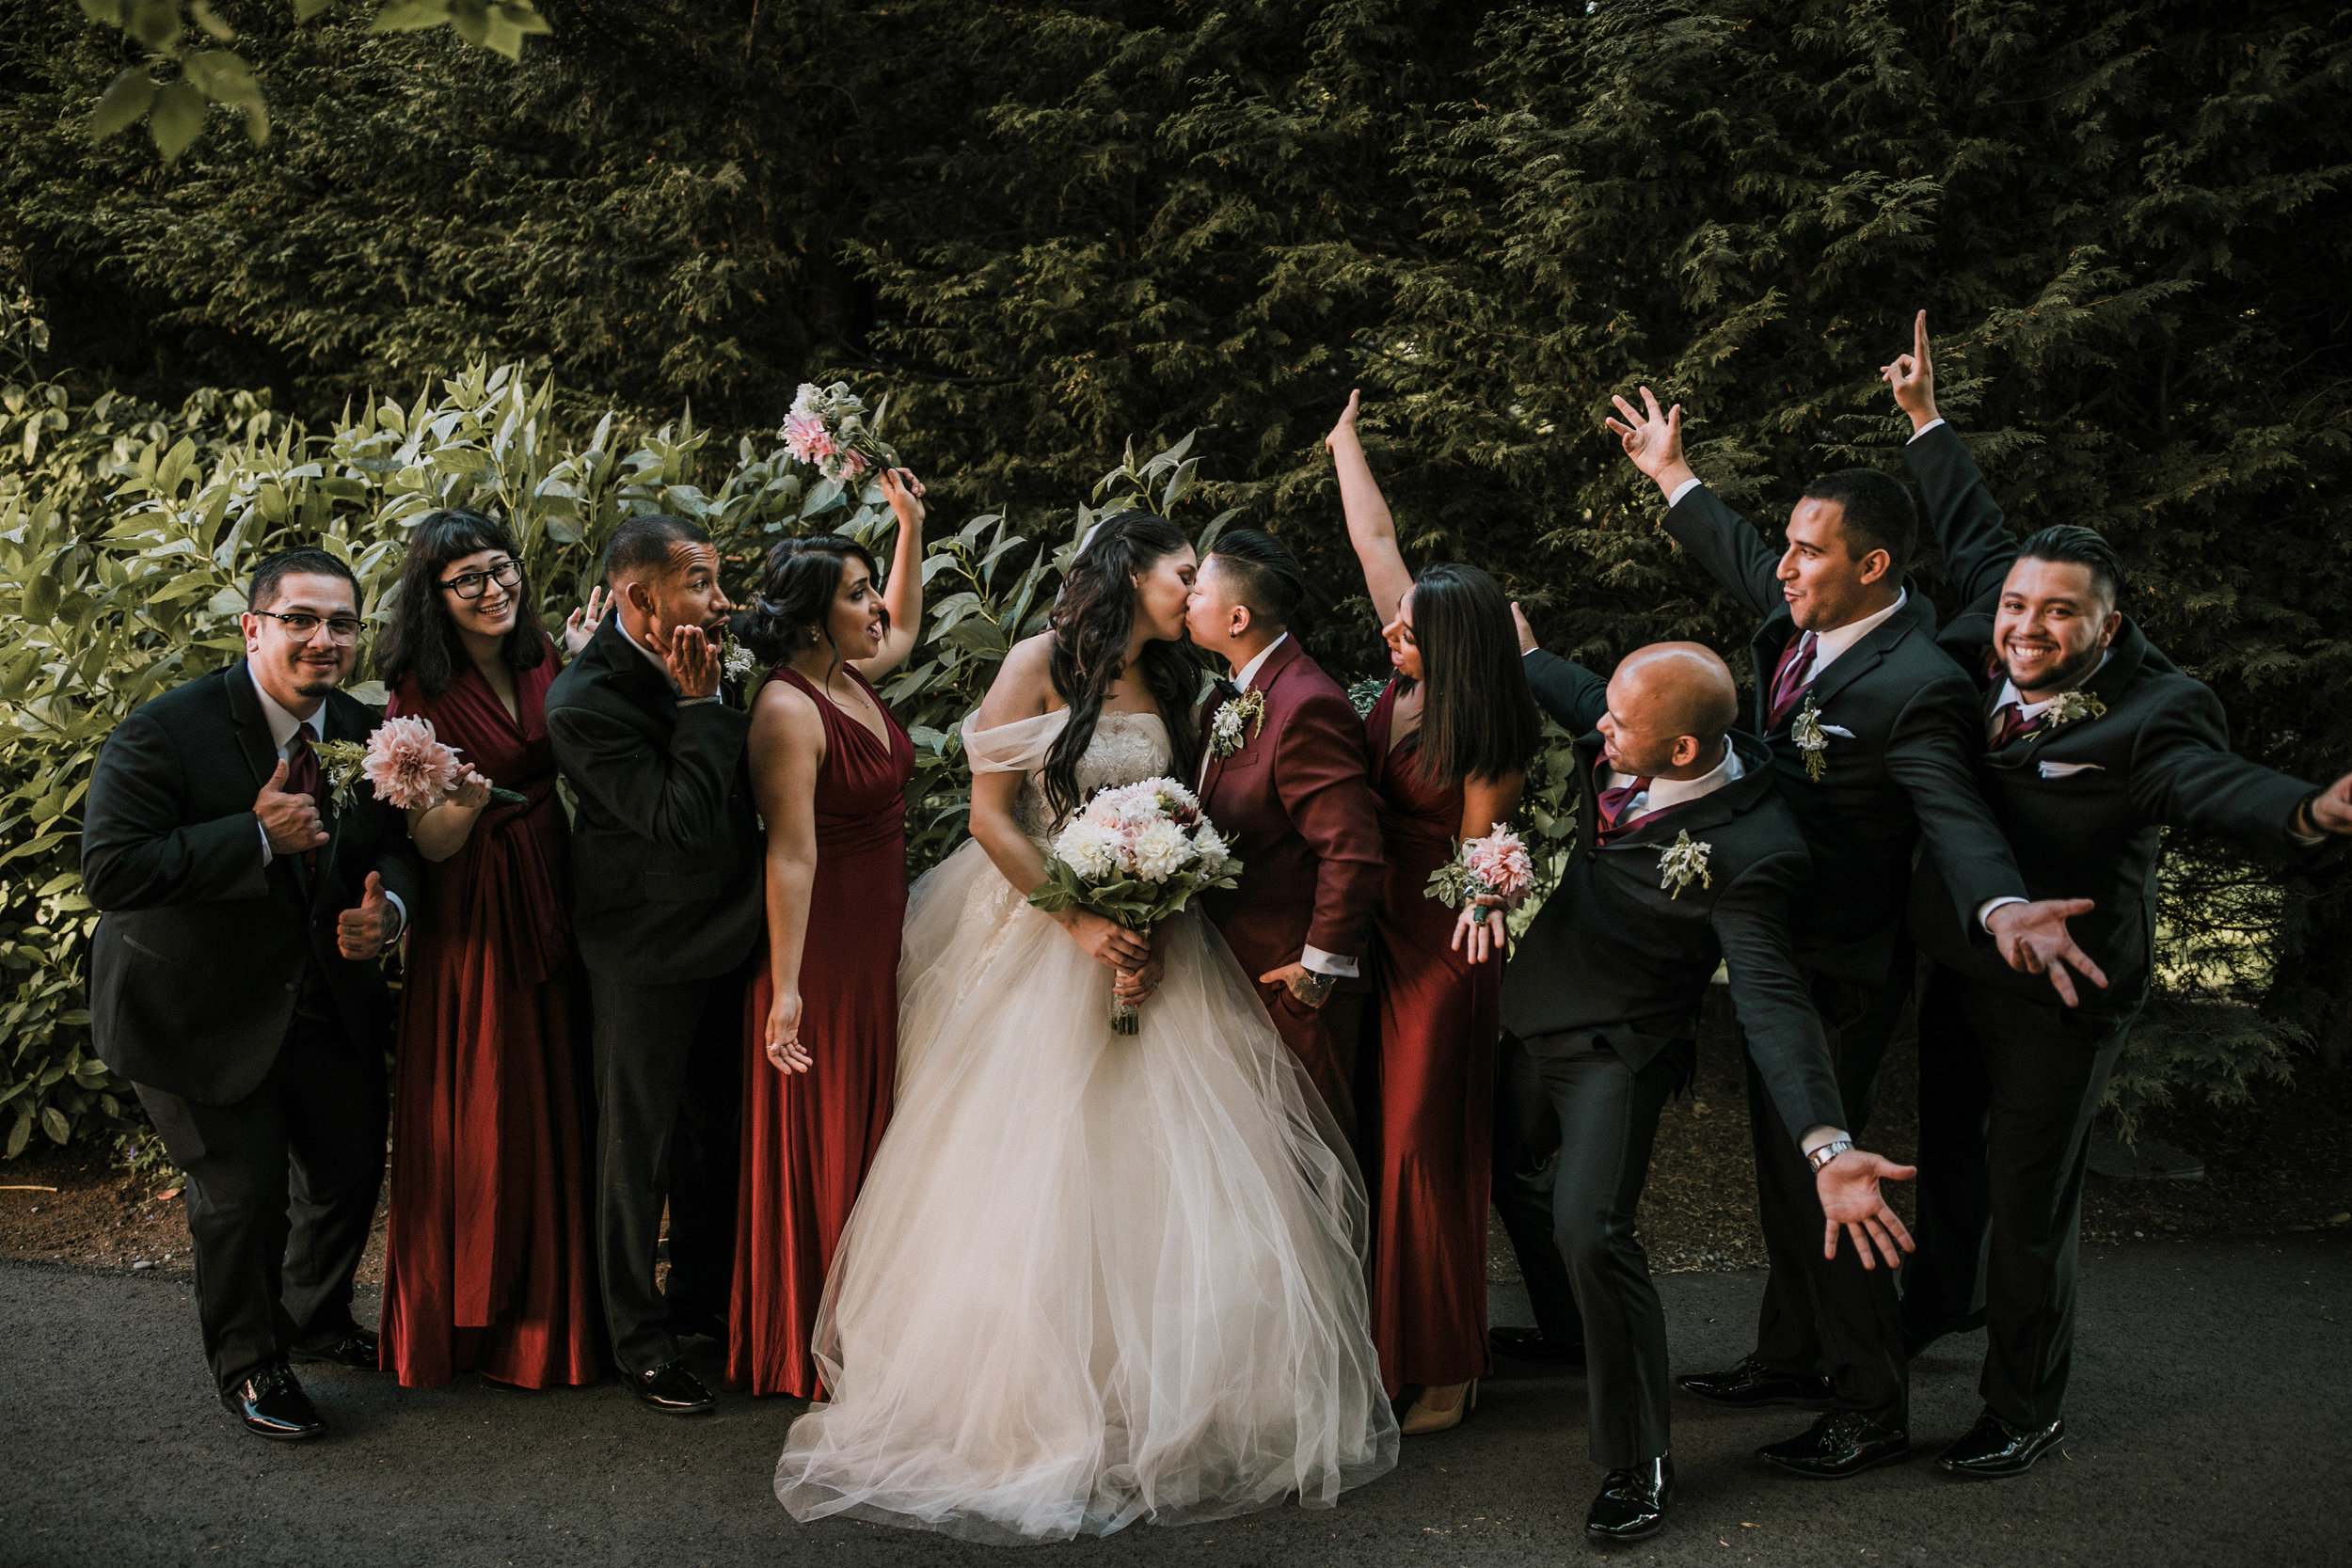 This was our wedding party picture from our recent wedding to the love of my life on Aug 10, 2018.